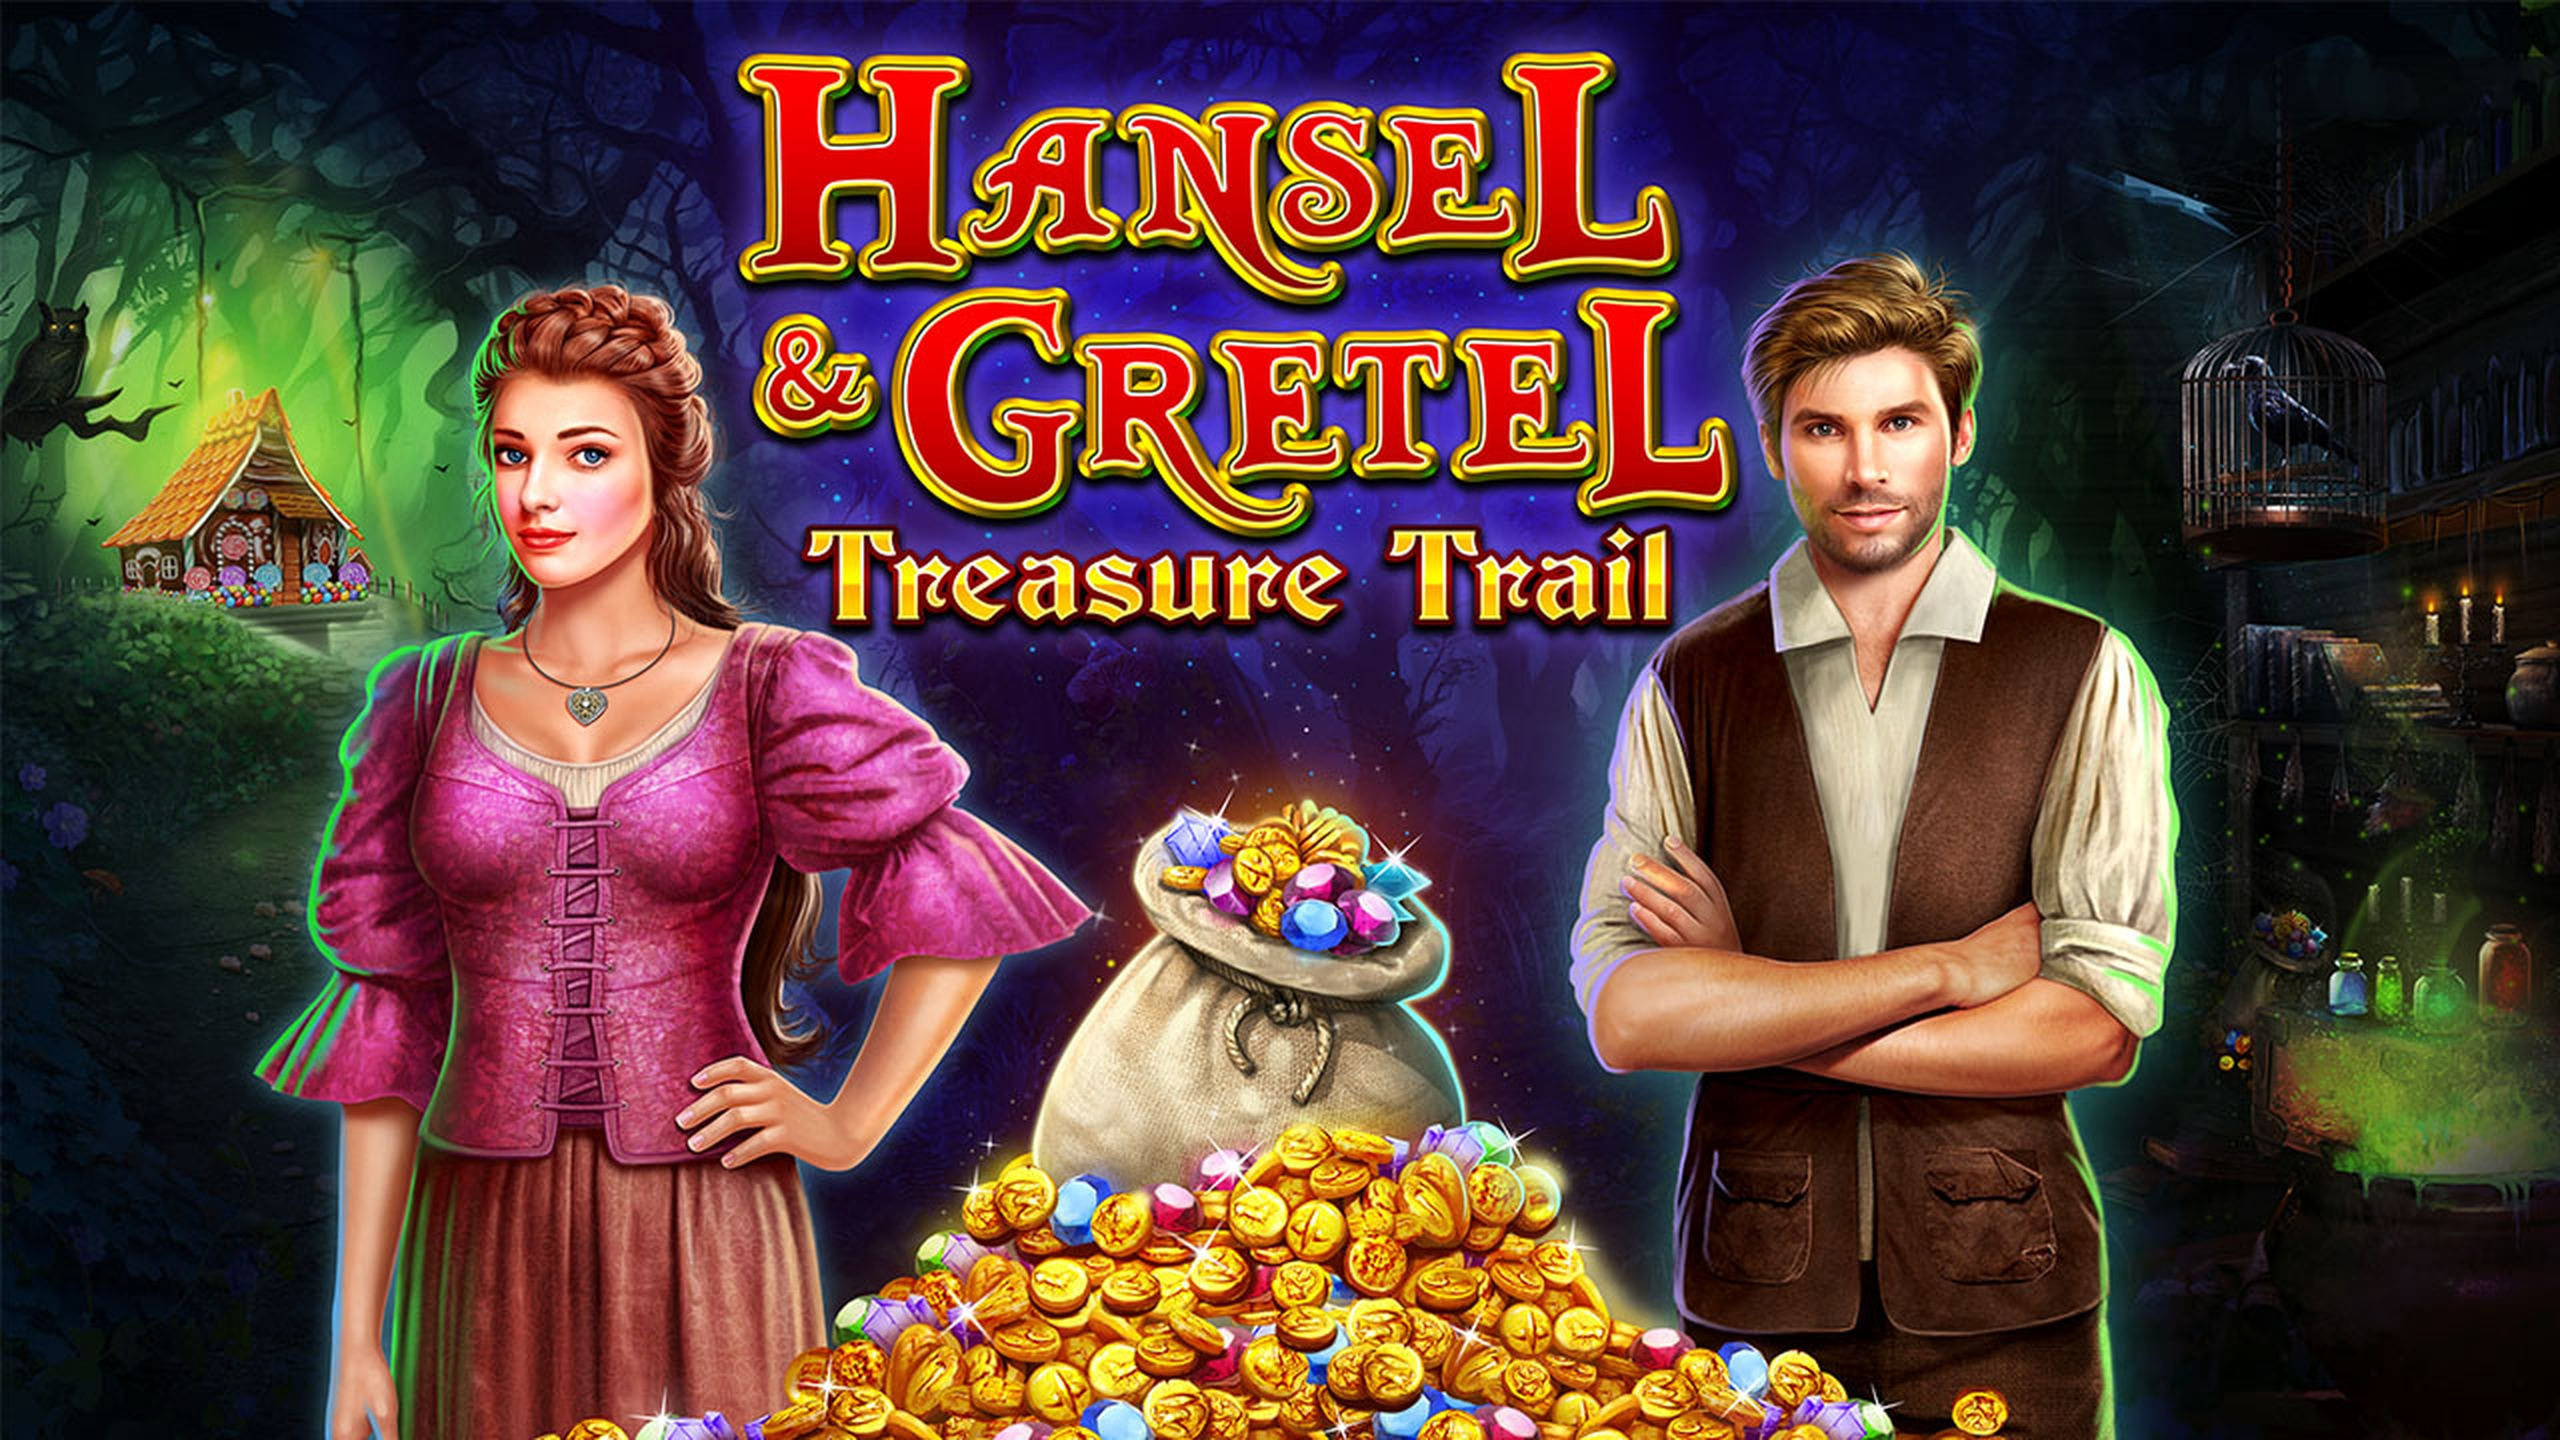 The Hansel & Gretel Treasure Trail Online Slot Demo Game by 2 By 2 Gaming